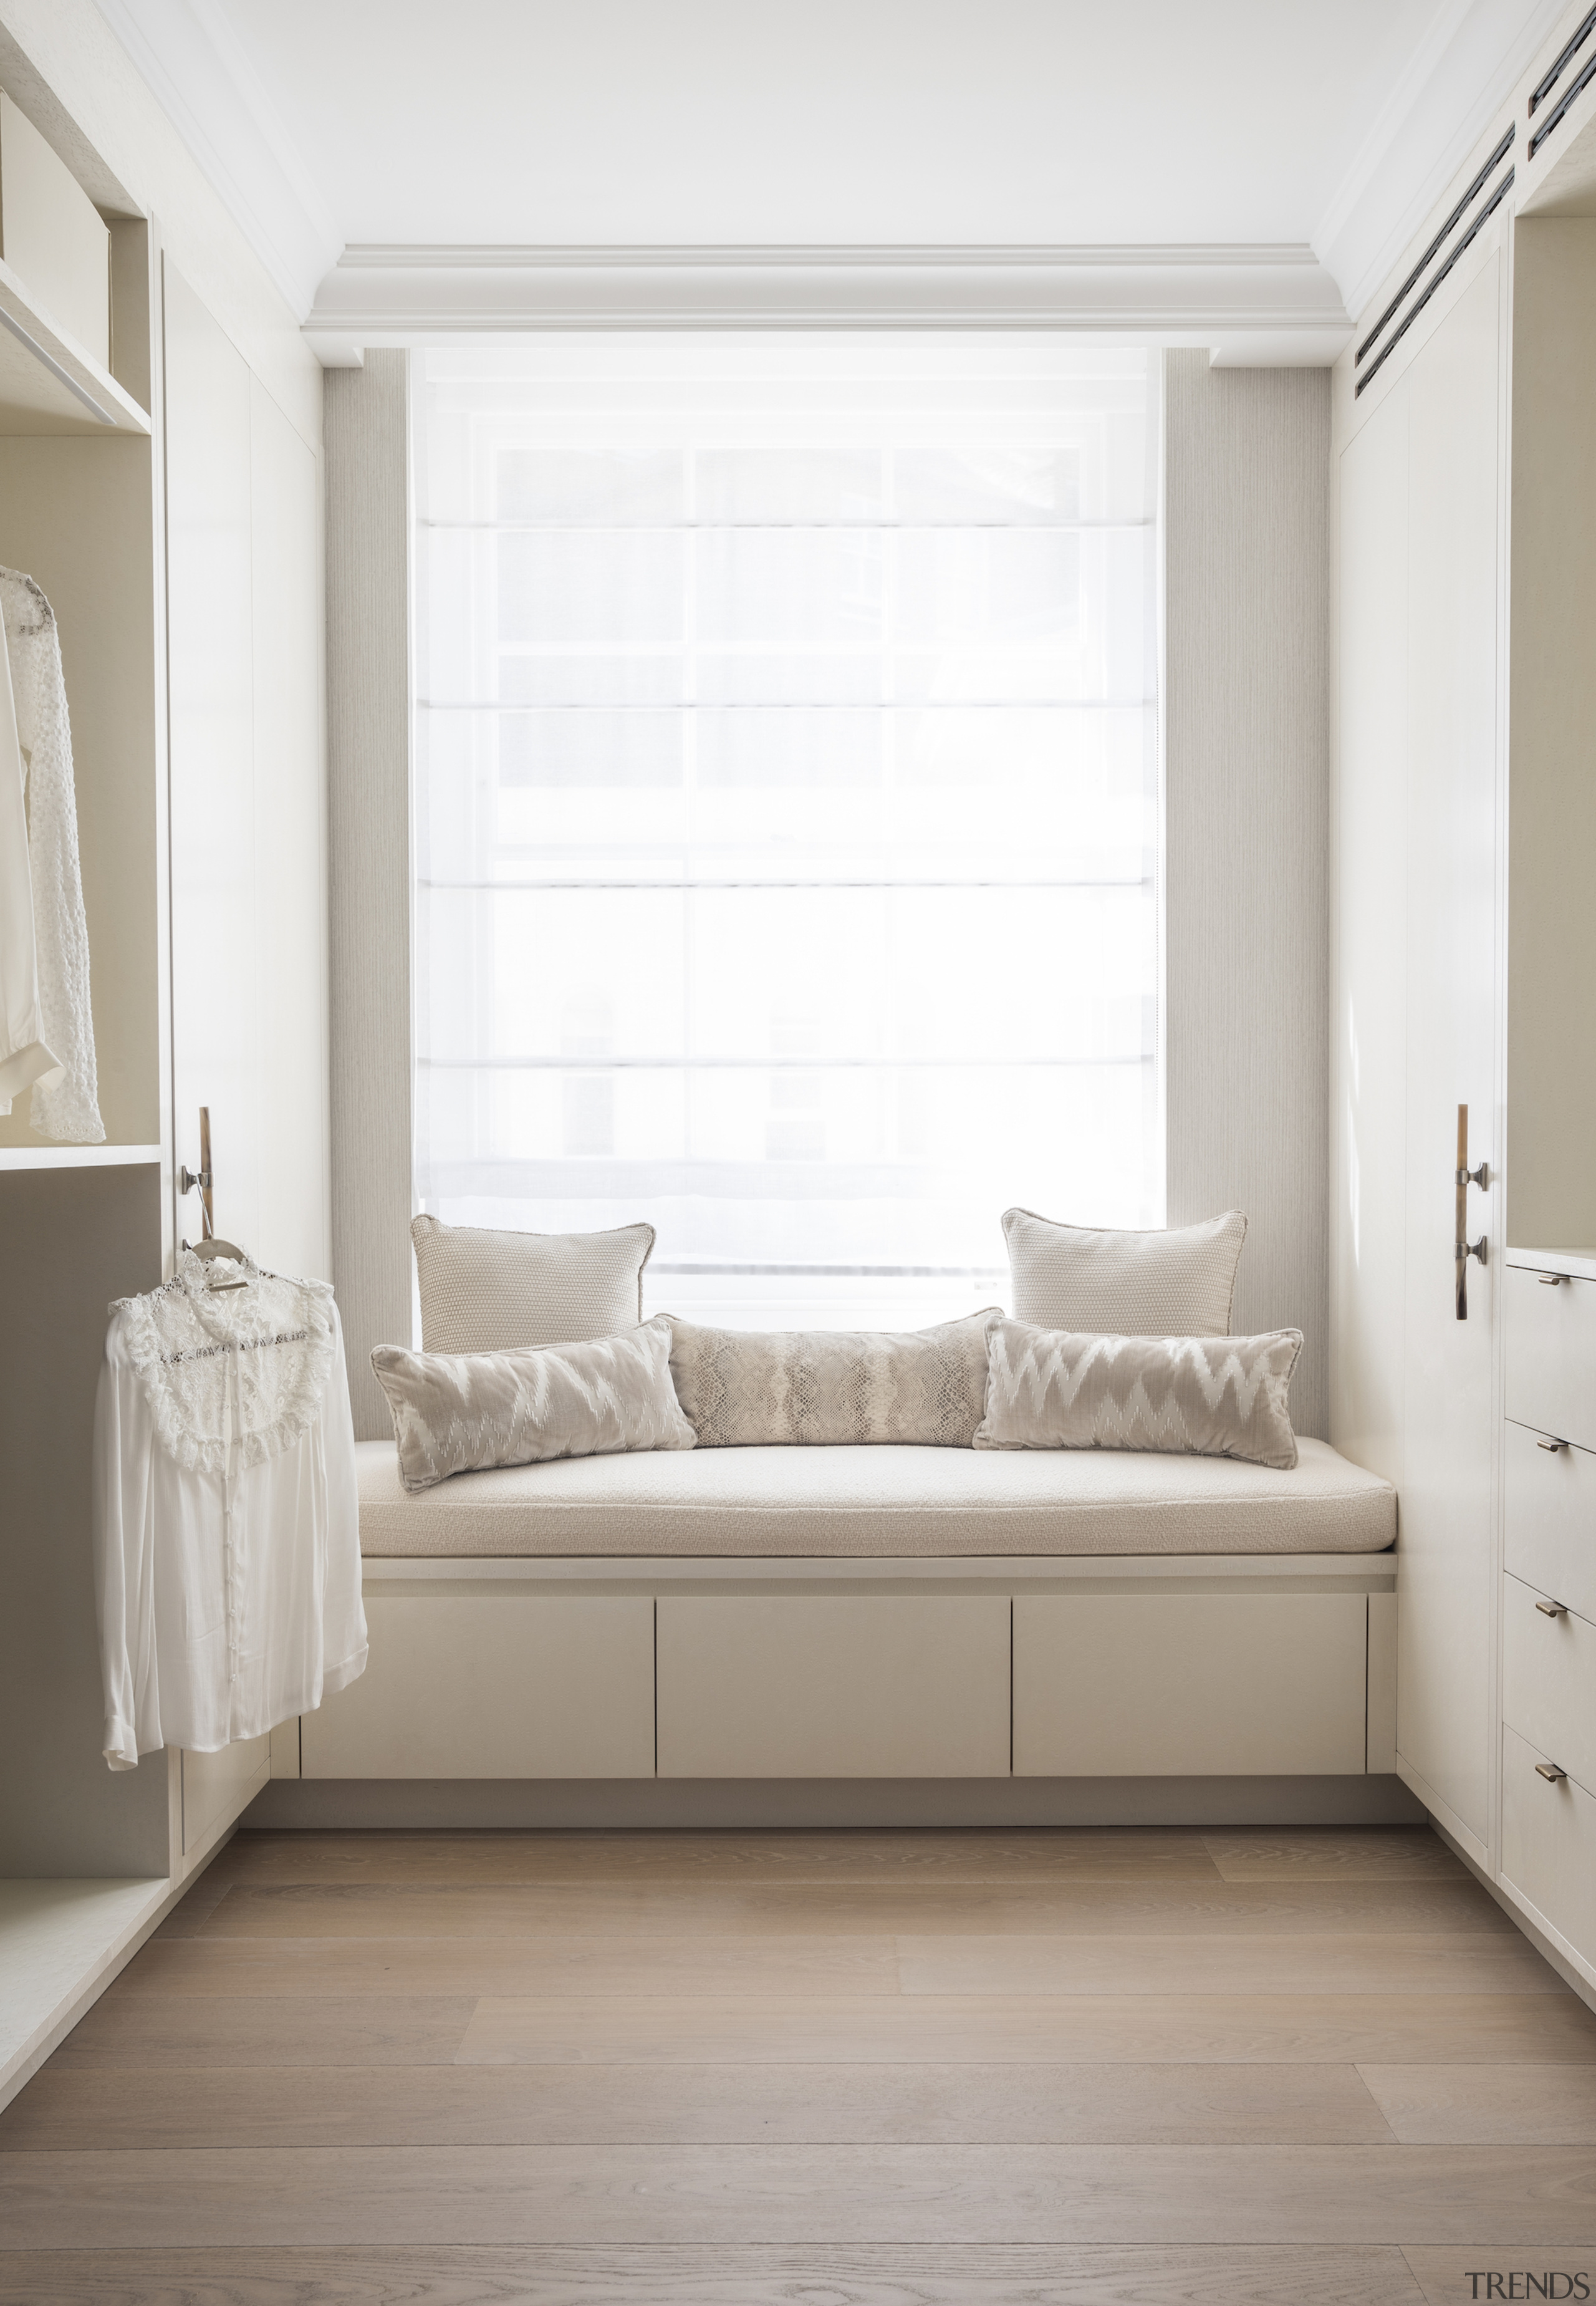 The walk-in wardrobe features an upholstered window seat